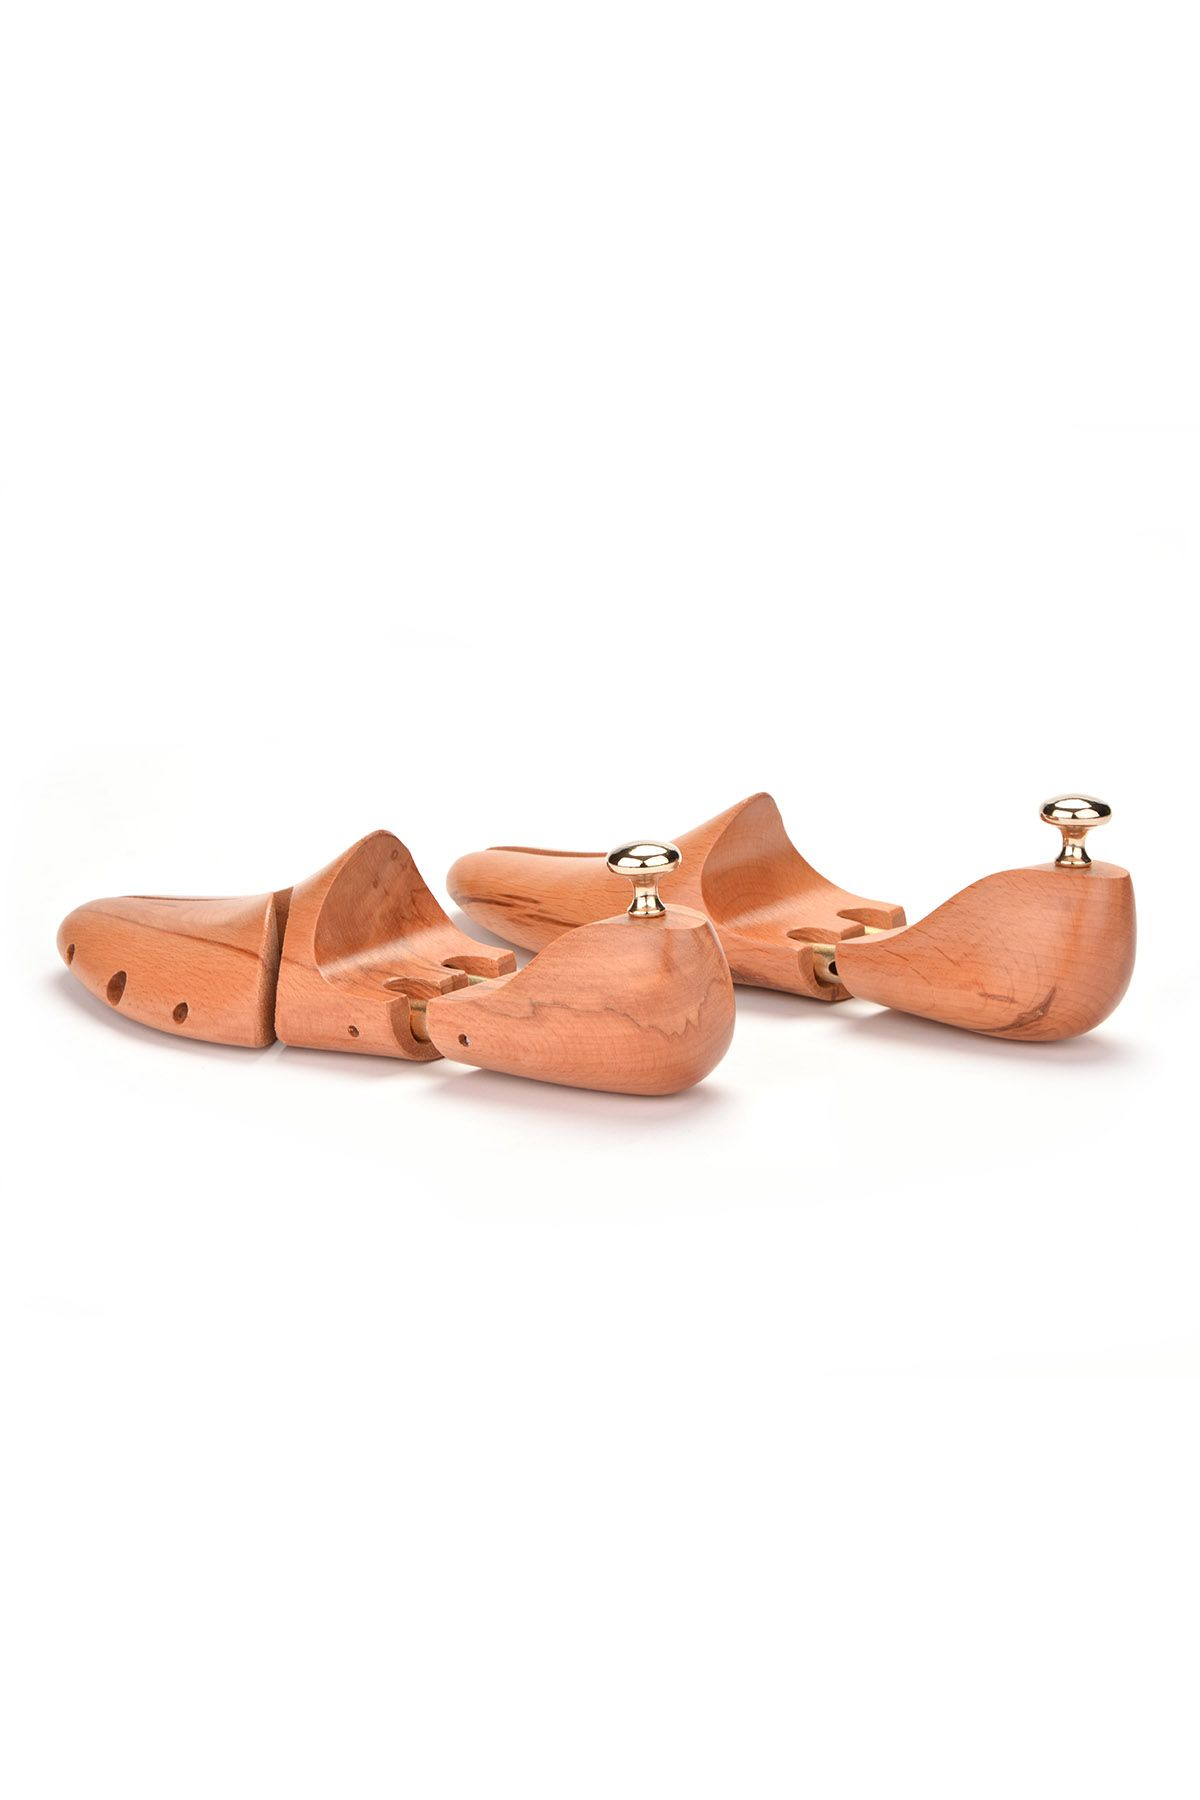 Pegia Polished Wooden Form For Shoes Natural